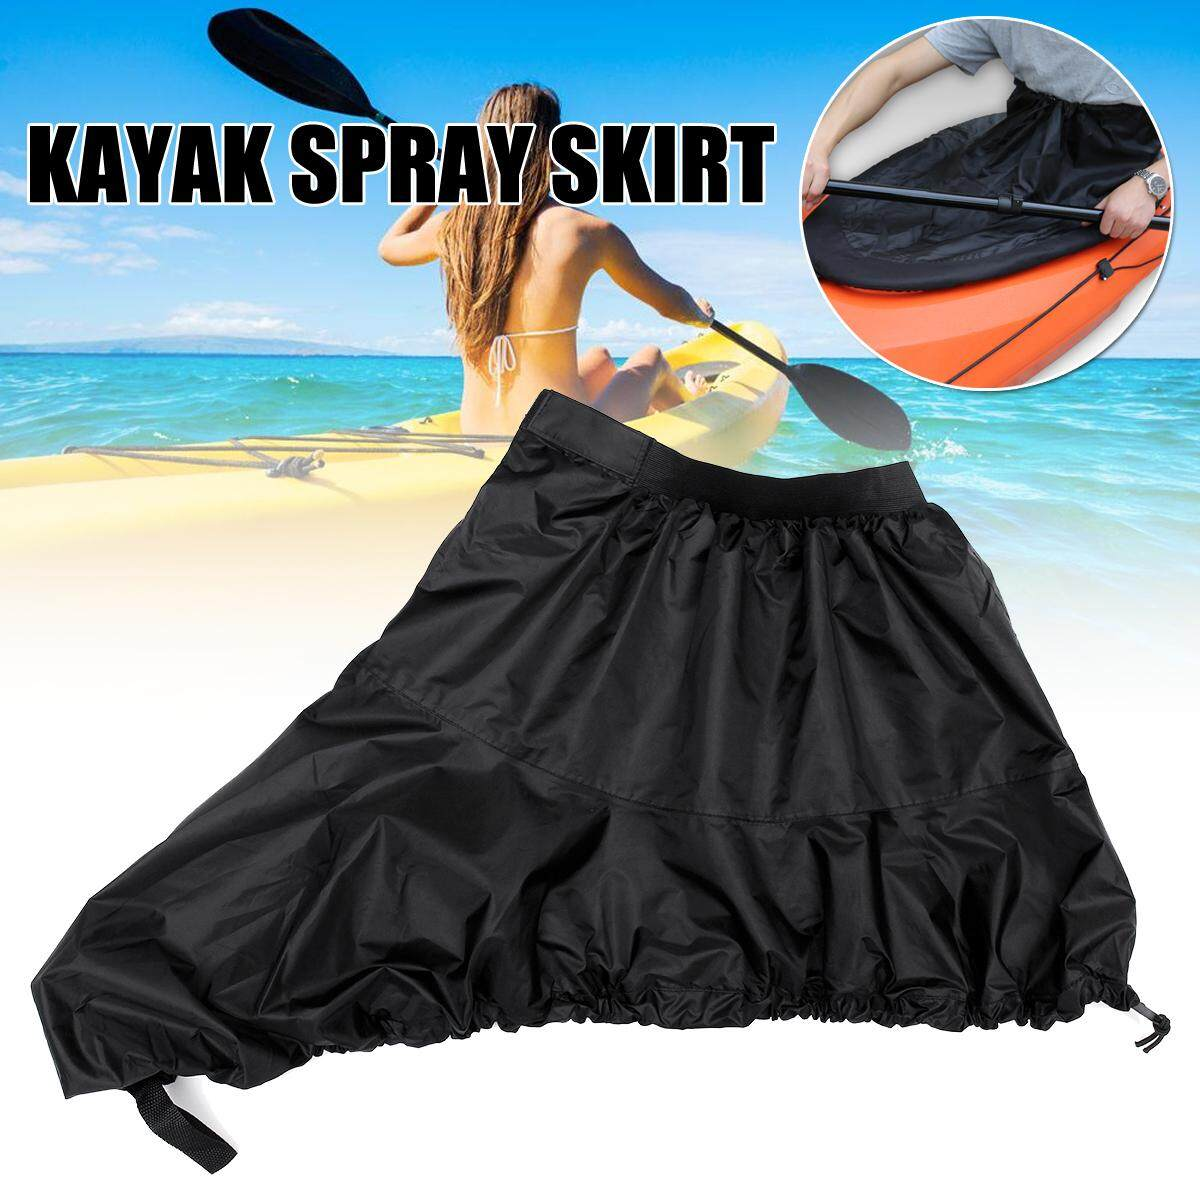 XL Kayak Spray Skirt Cover Canoe Cover Oxford Cloth Waterproof Anti-UV Sun